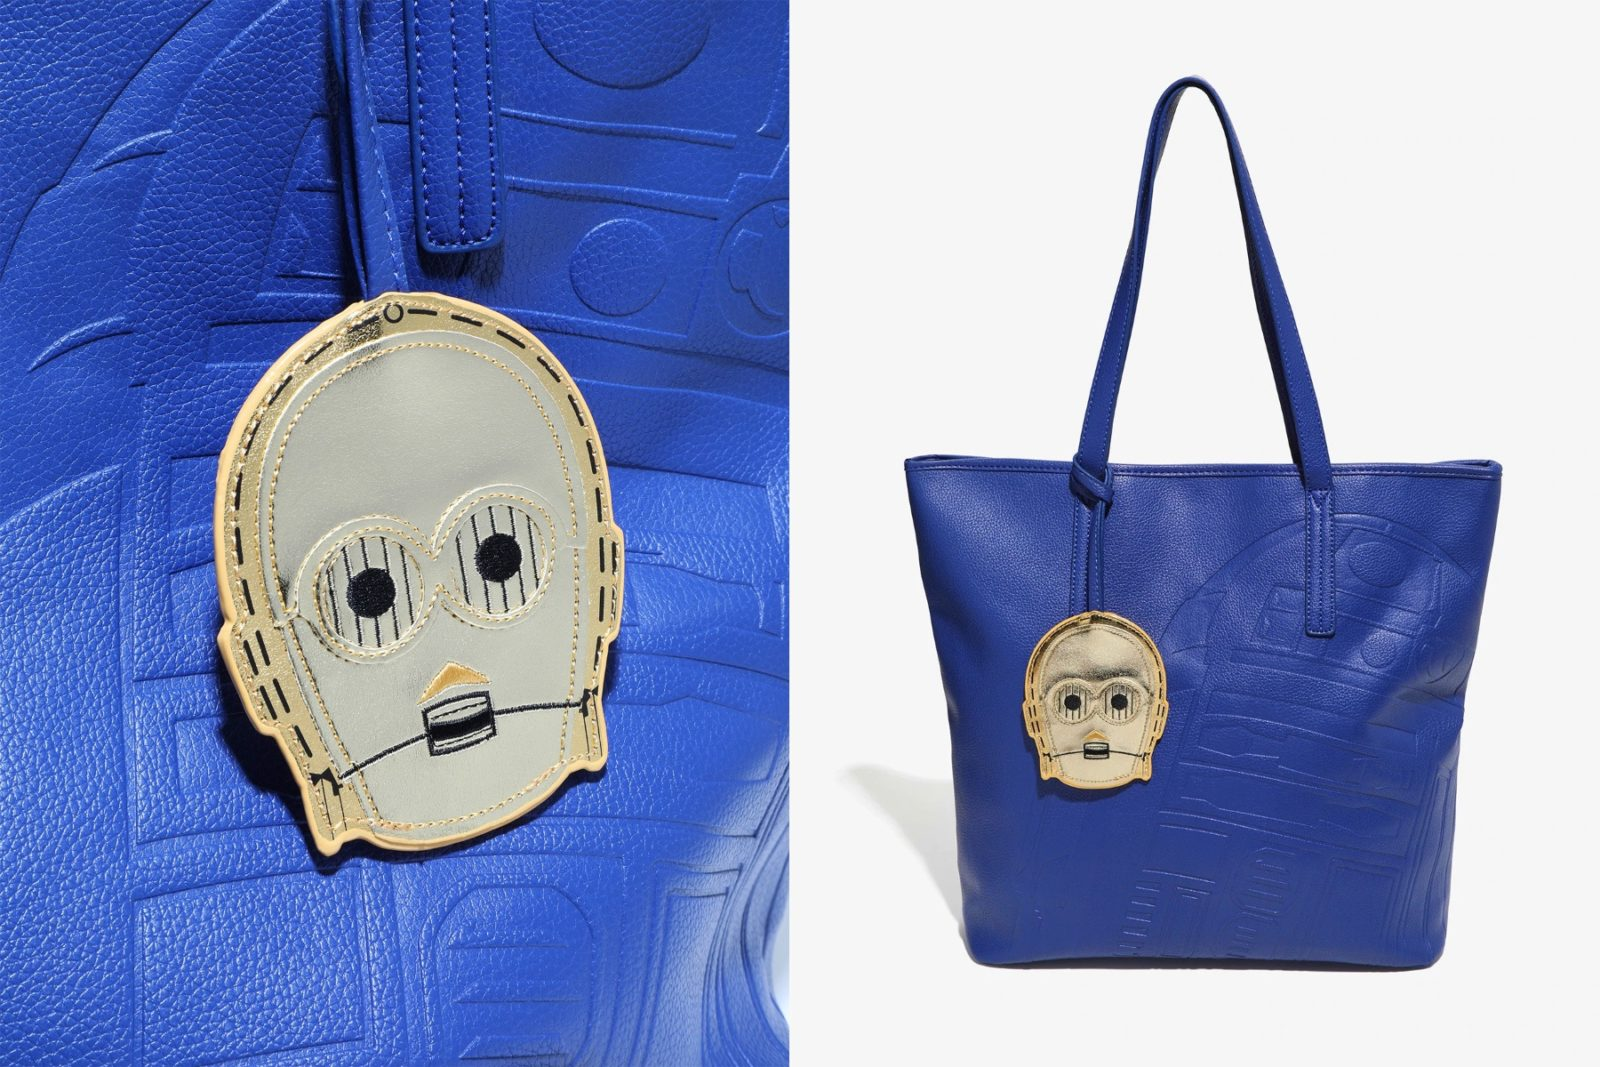 Loungefly R2-D2 Tote Bag on Sale for Half Price!